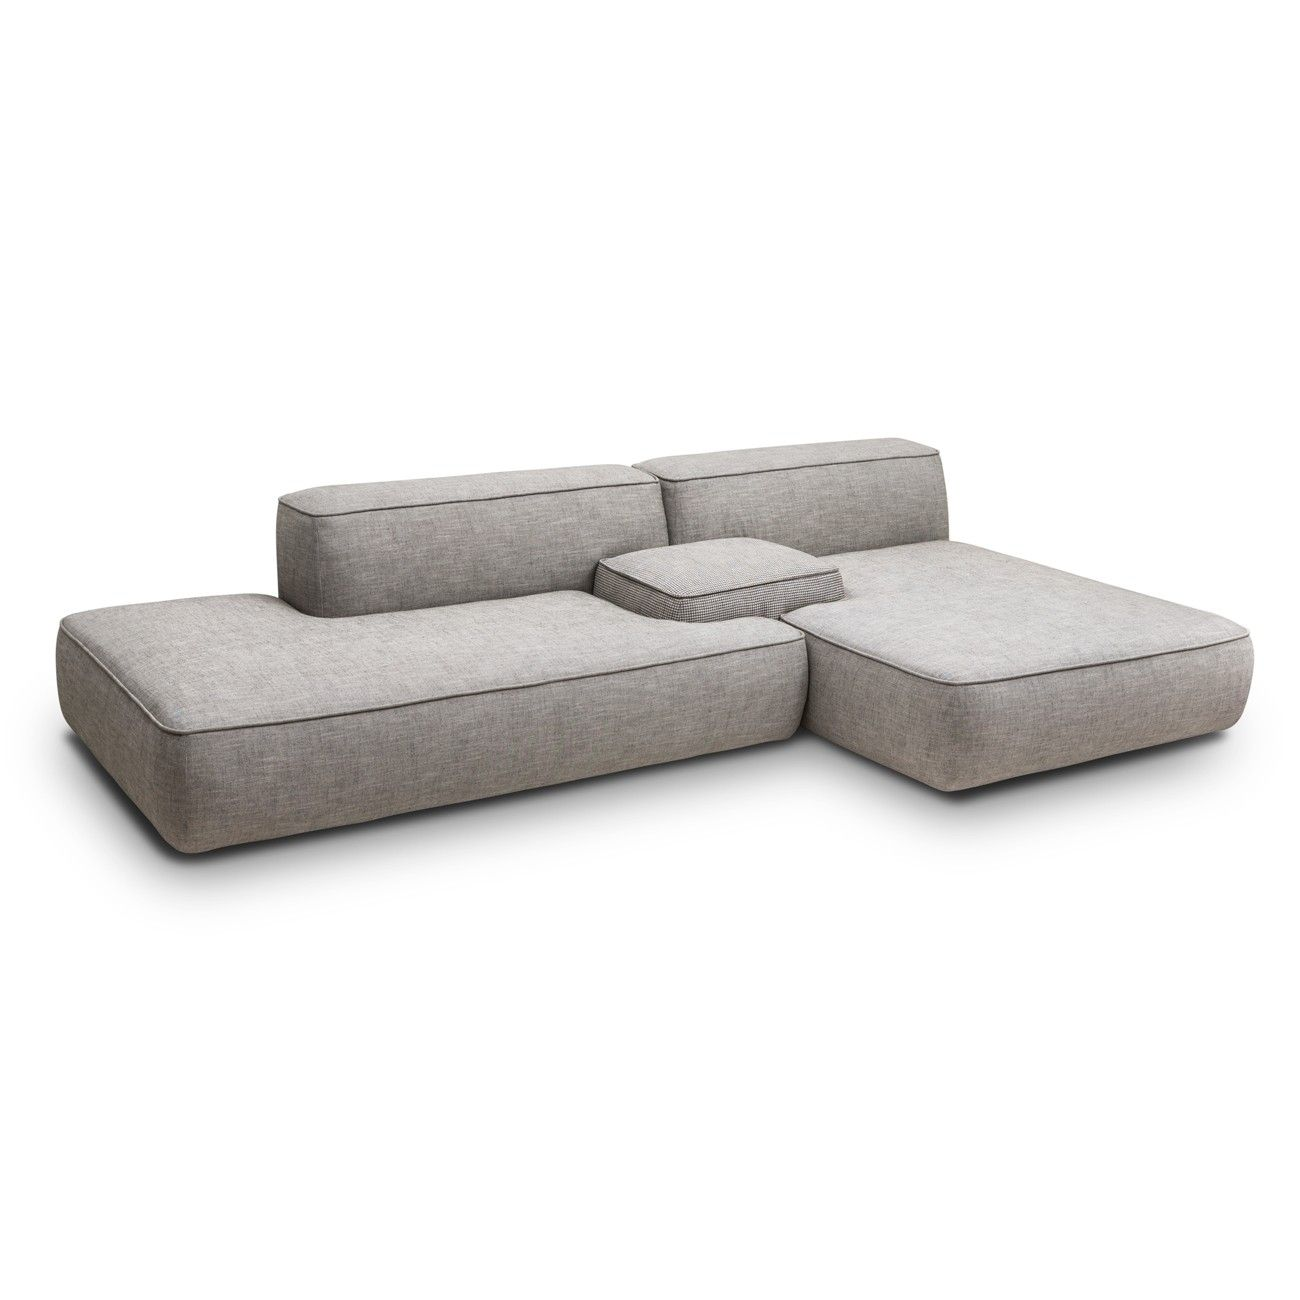 Lema Cloud Modular Sofa 2980 with Chaise u0026 Armrest - Rogerseller  sc 1 st  Pinterest : modular chaise - Sectionals, Sofas & Couches